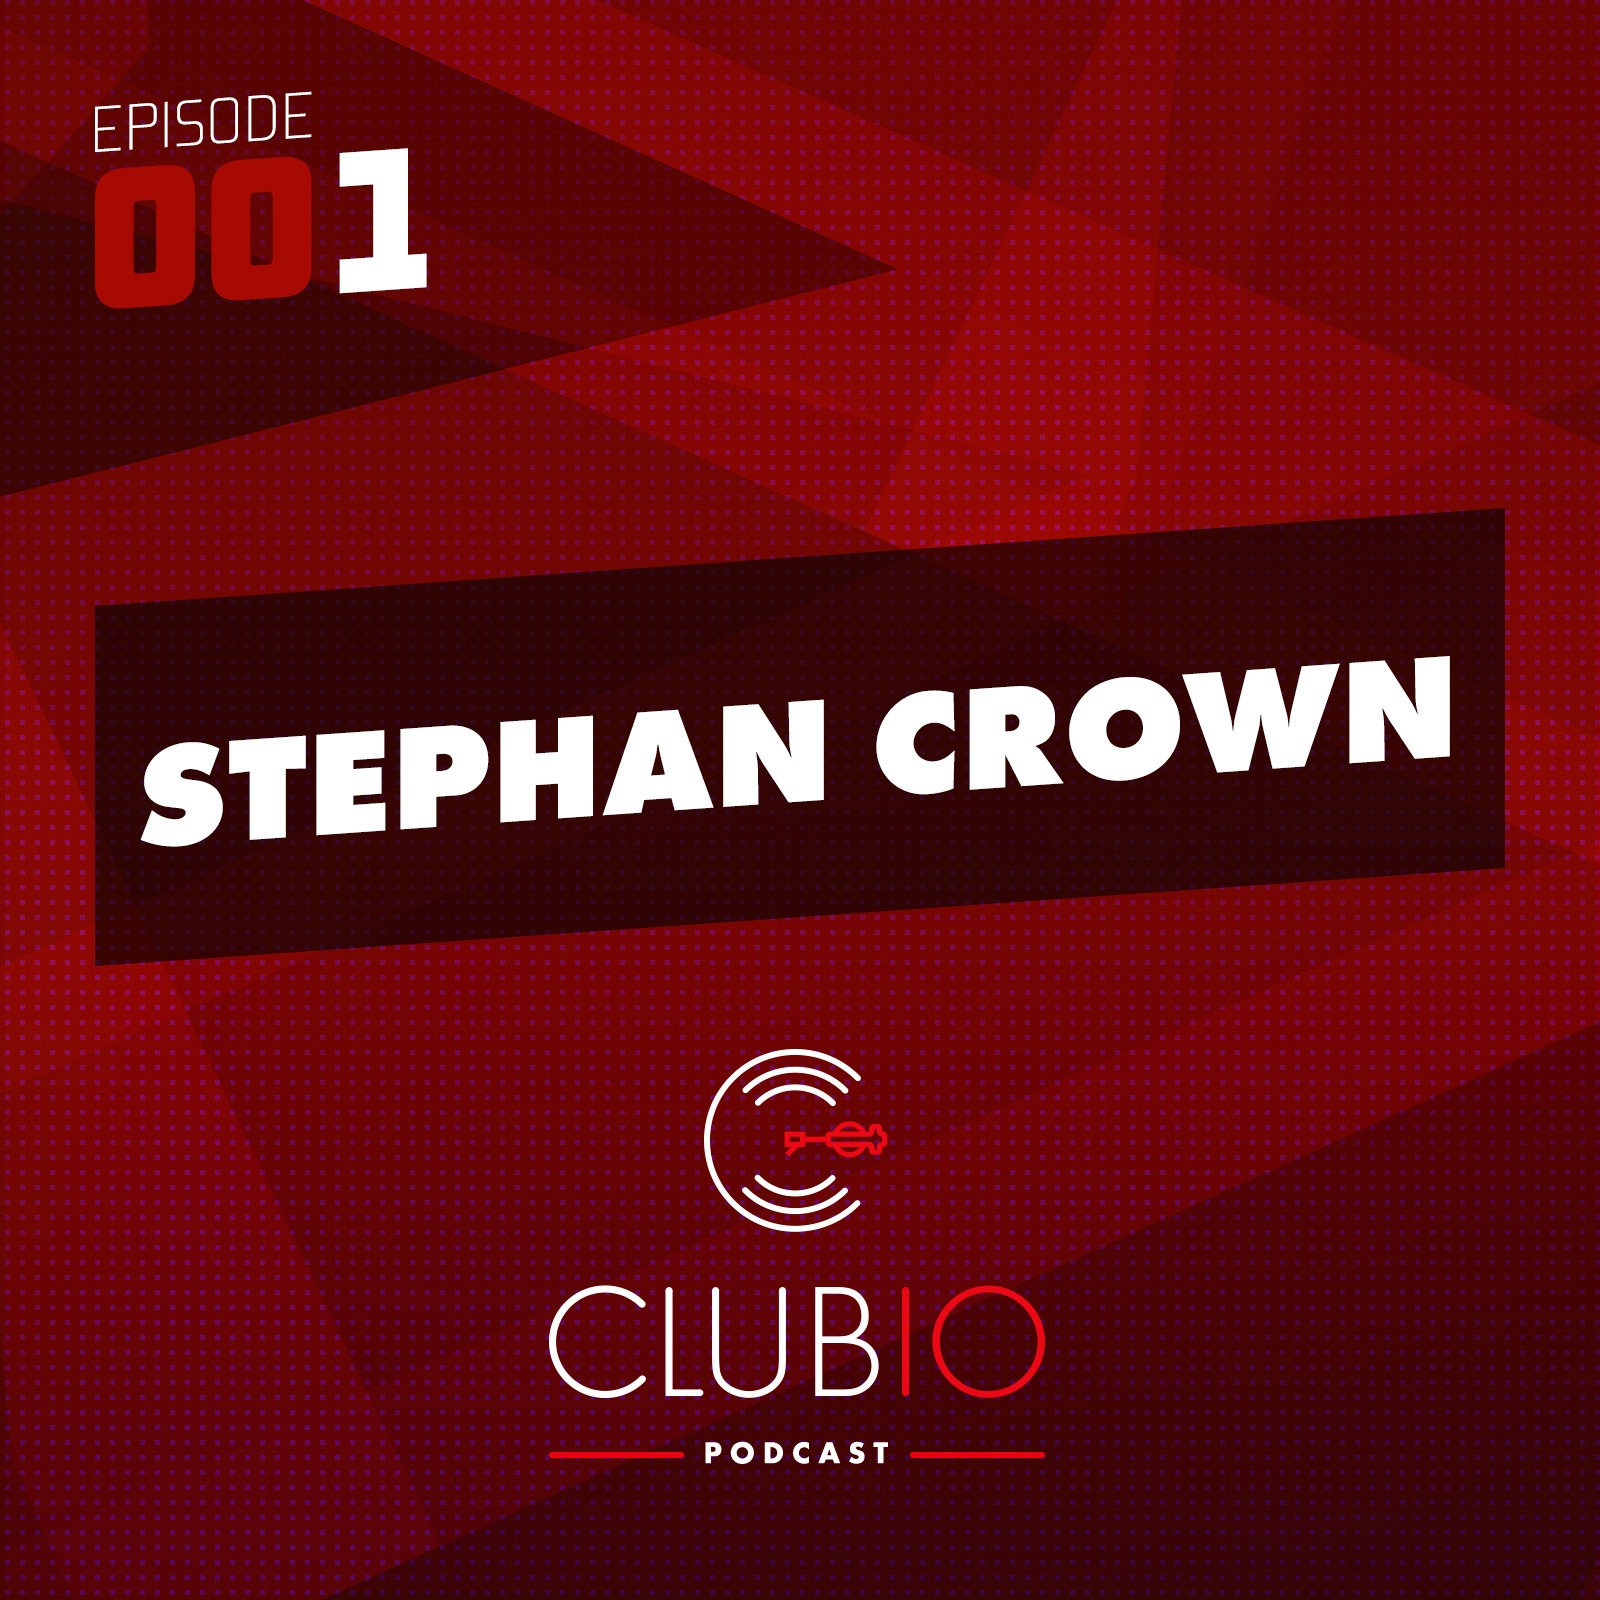 Clubio Podcast 001 - Stephan Crown